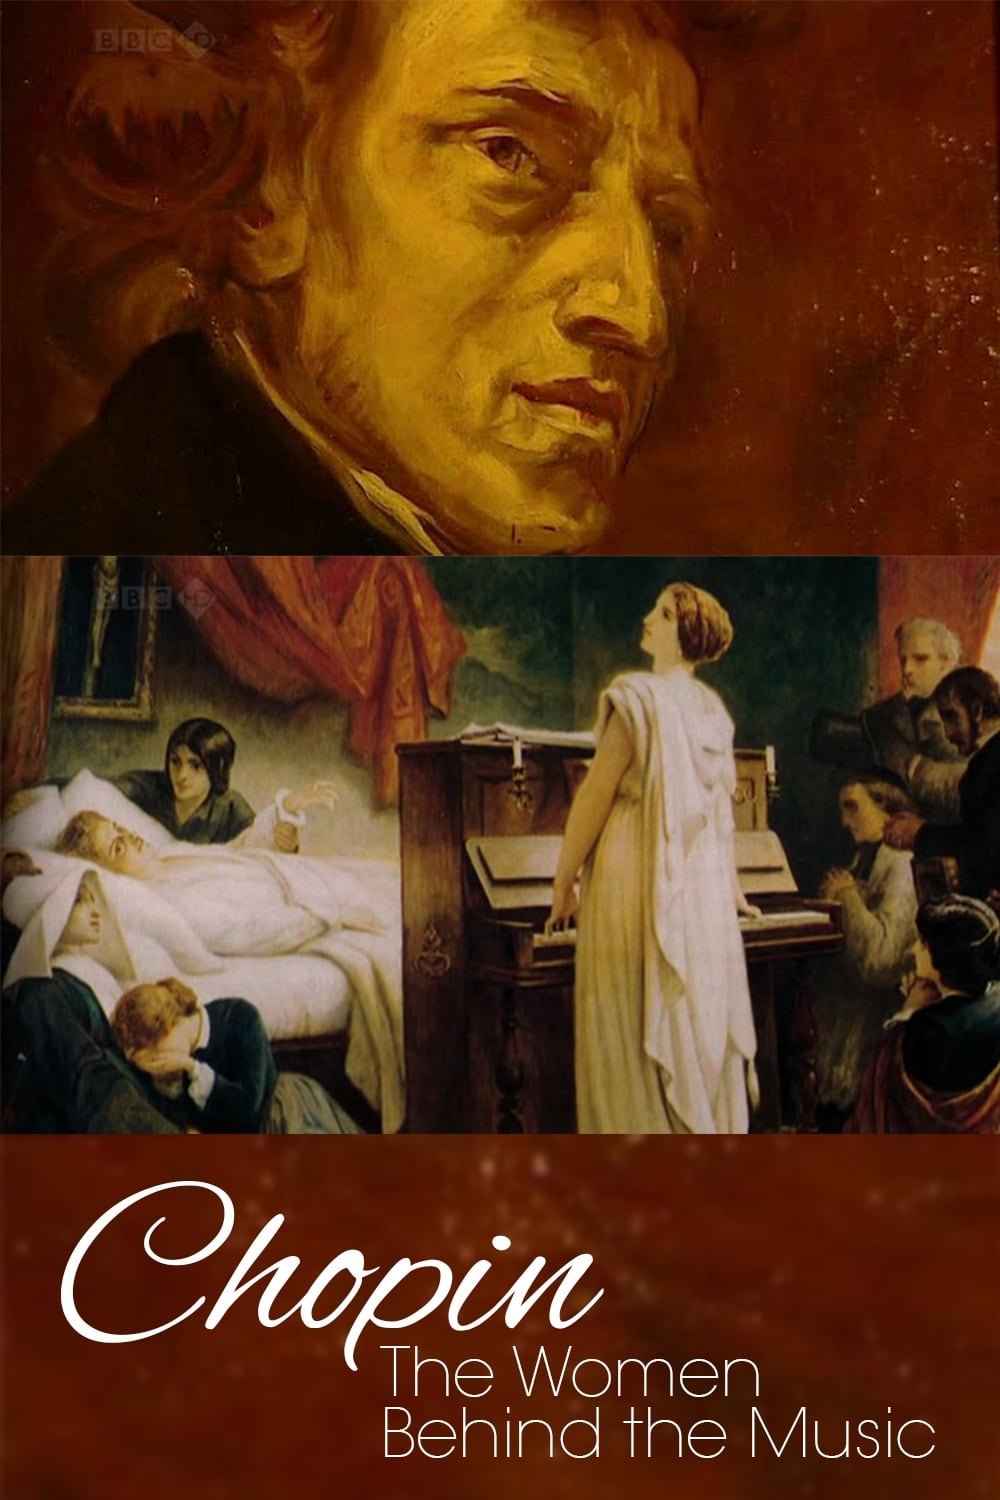 Chopin: The Women Behind the Music (2010)